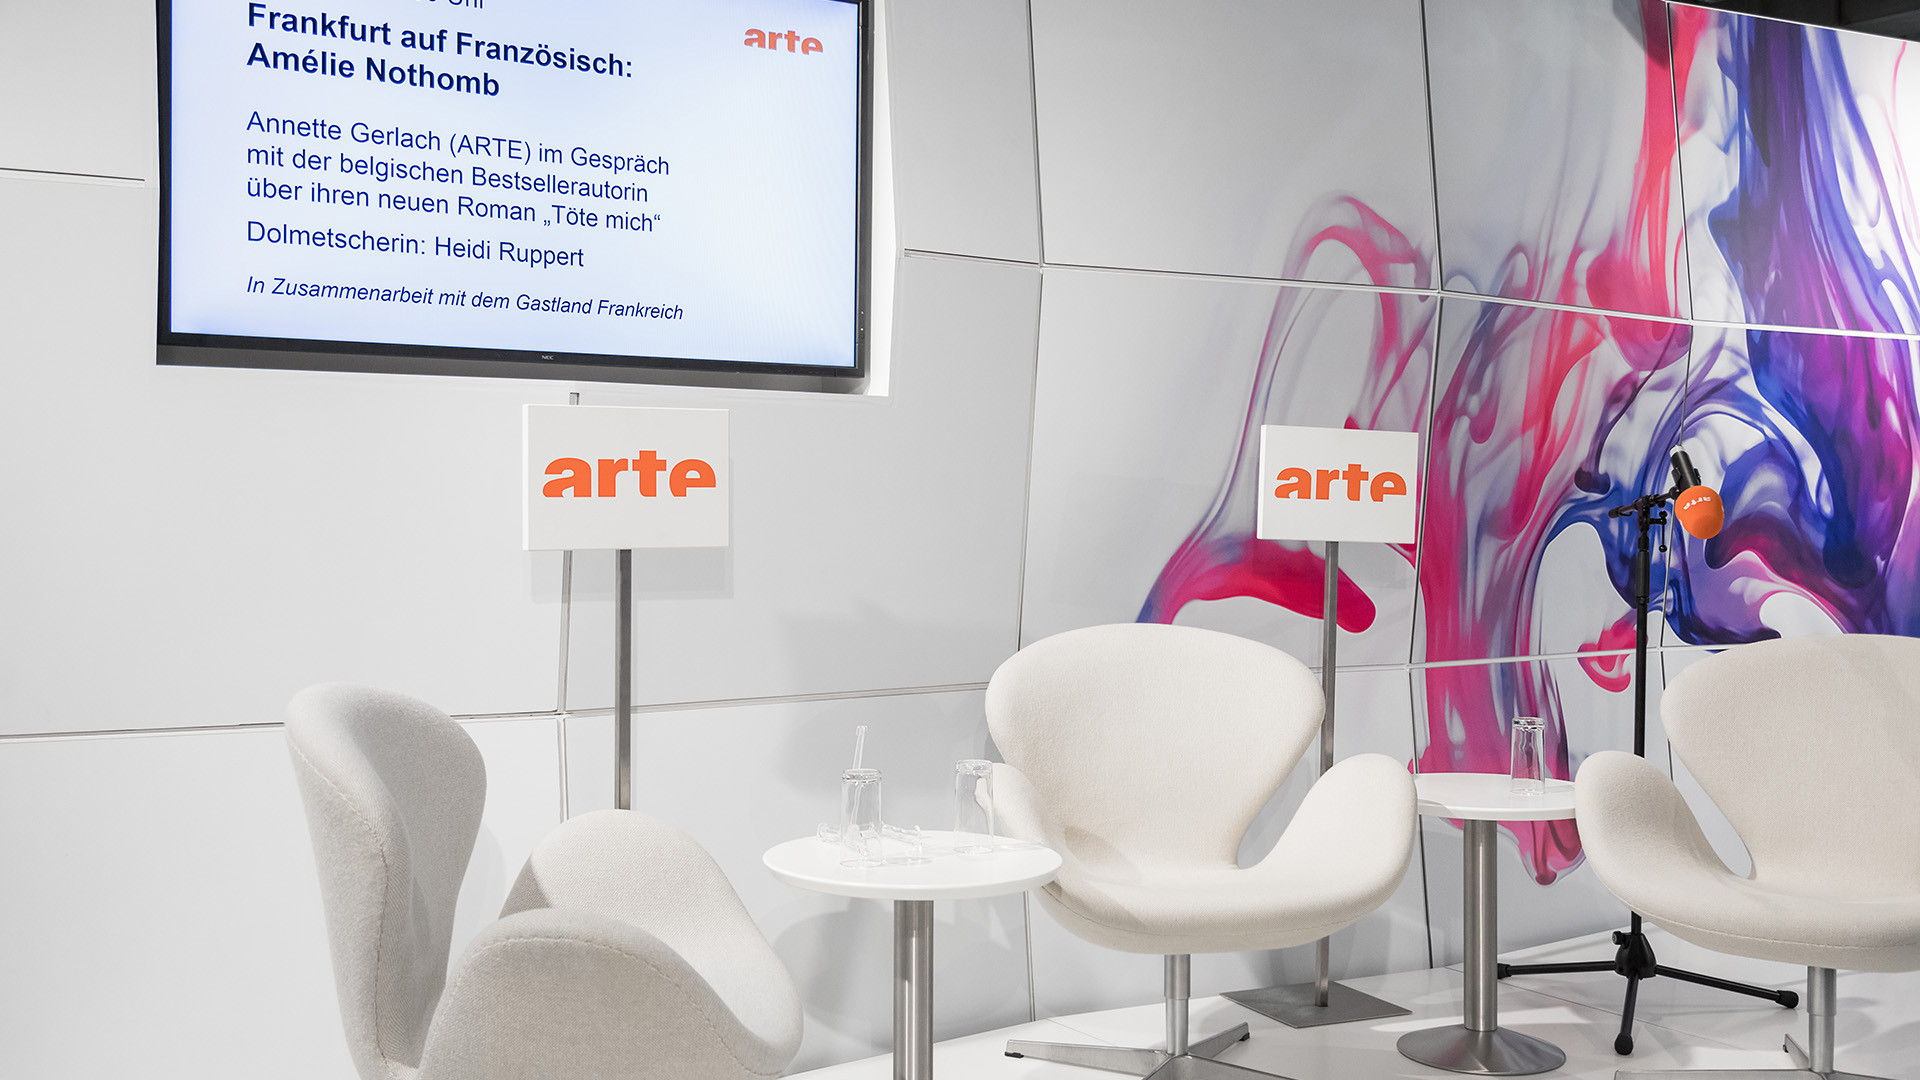 Dart stages the Arte fair stand at the Frankfurter Buchmesse 2017